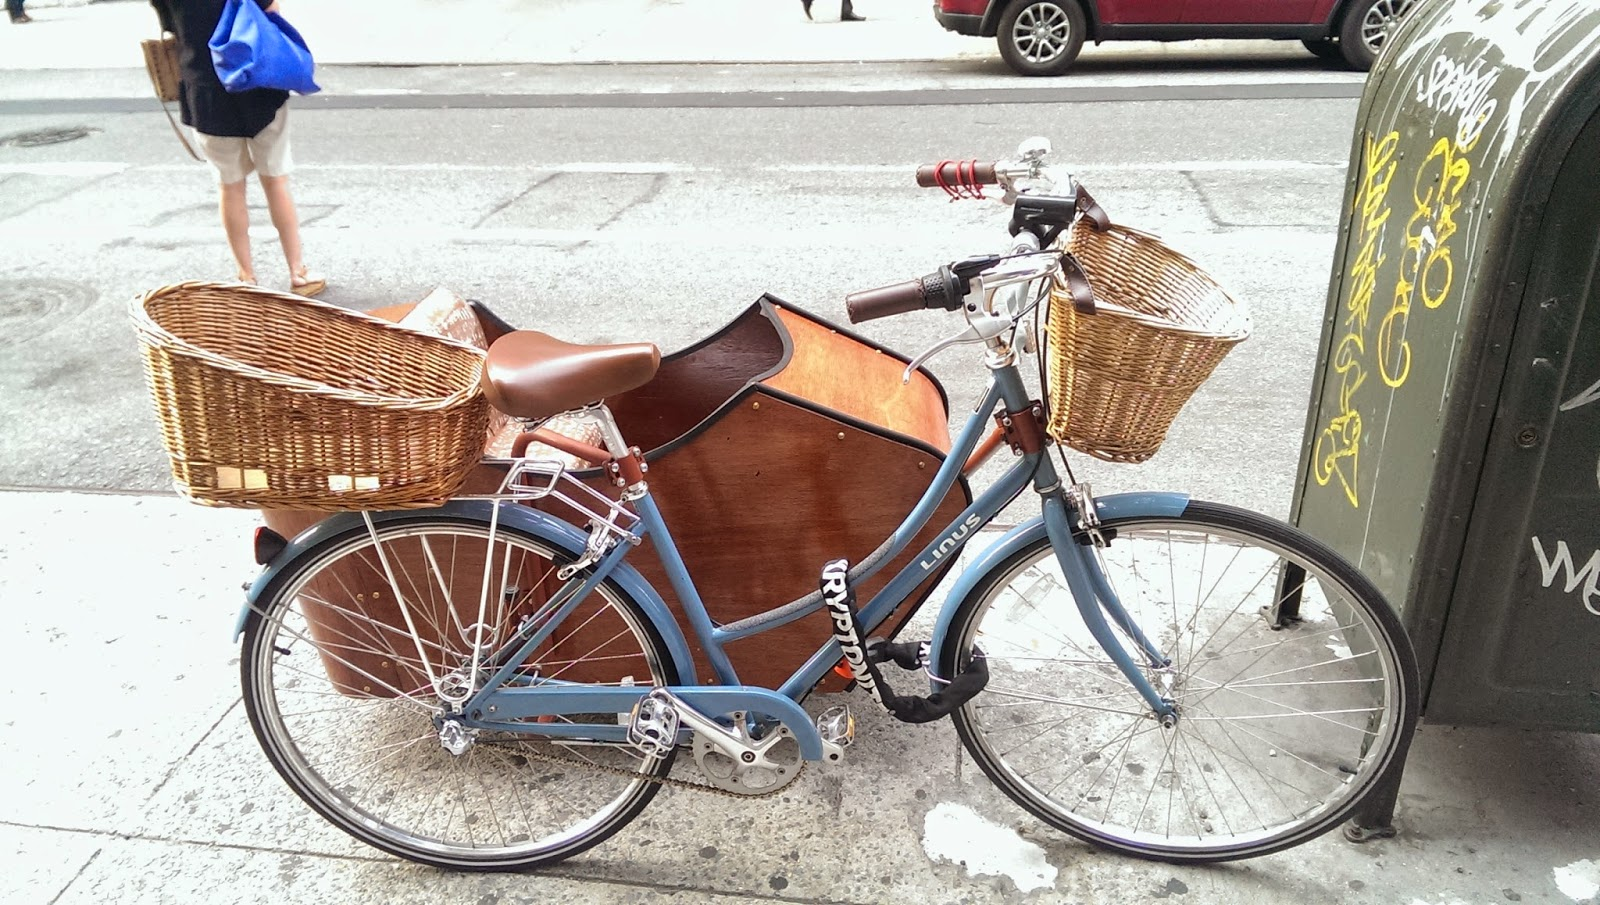 Cool Bicycle With Wooden Sidecar And Front Back Baskets Spotted in